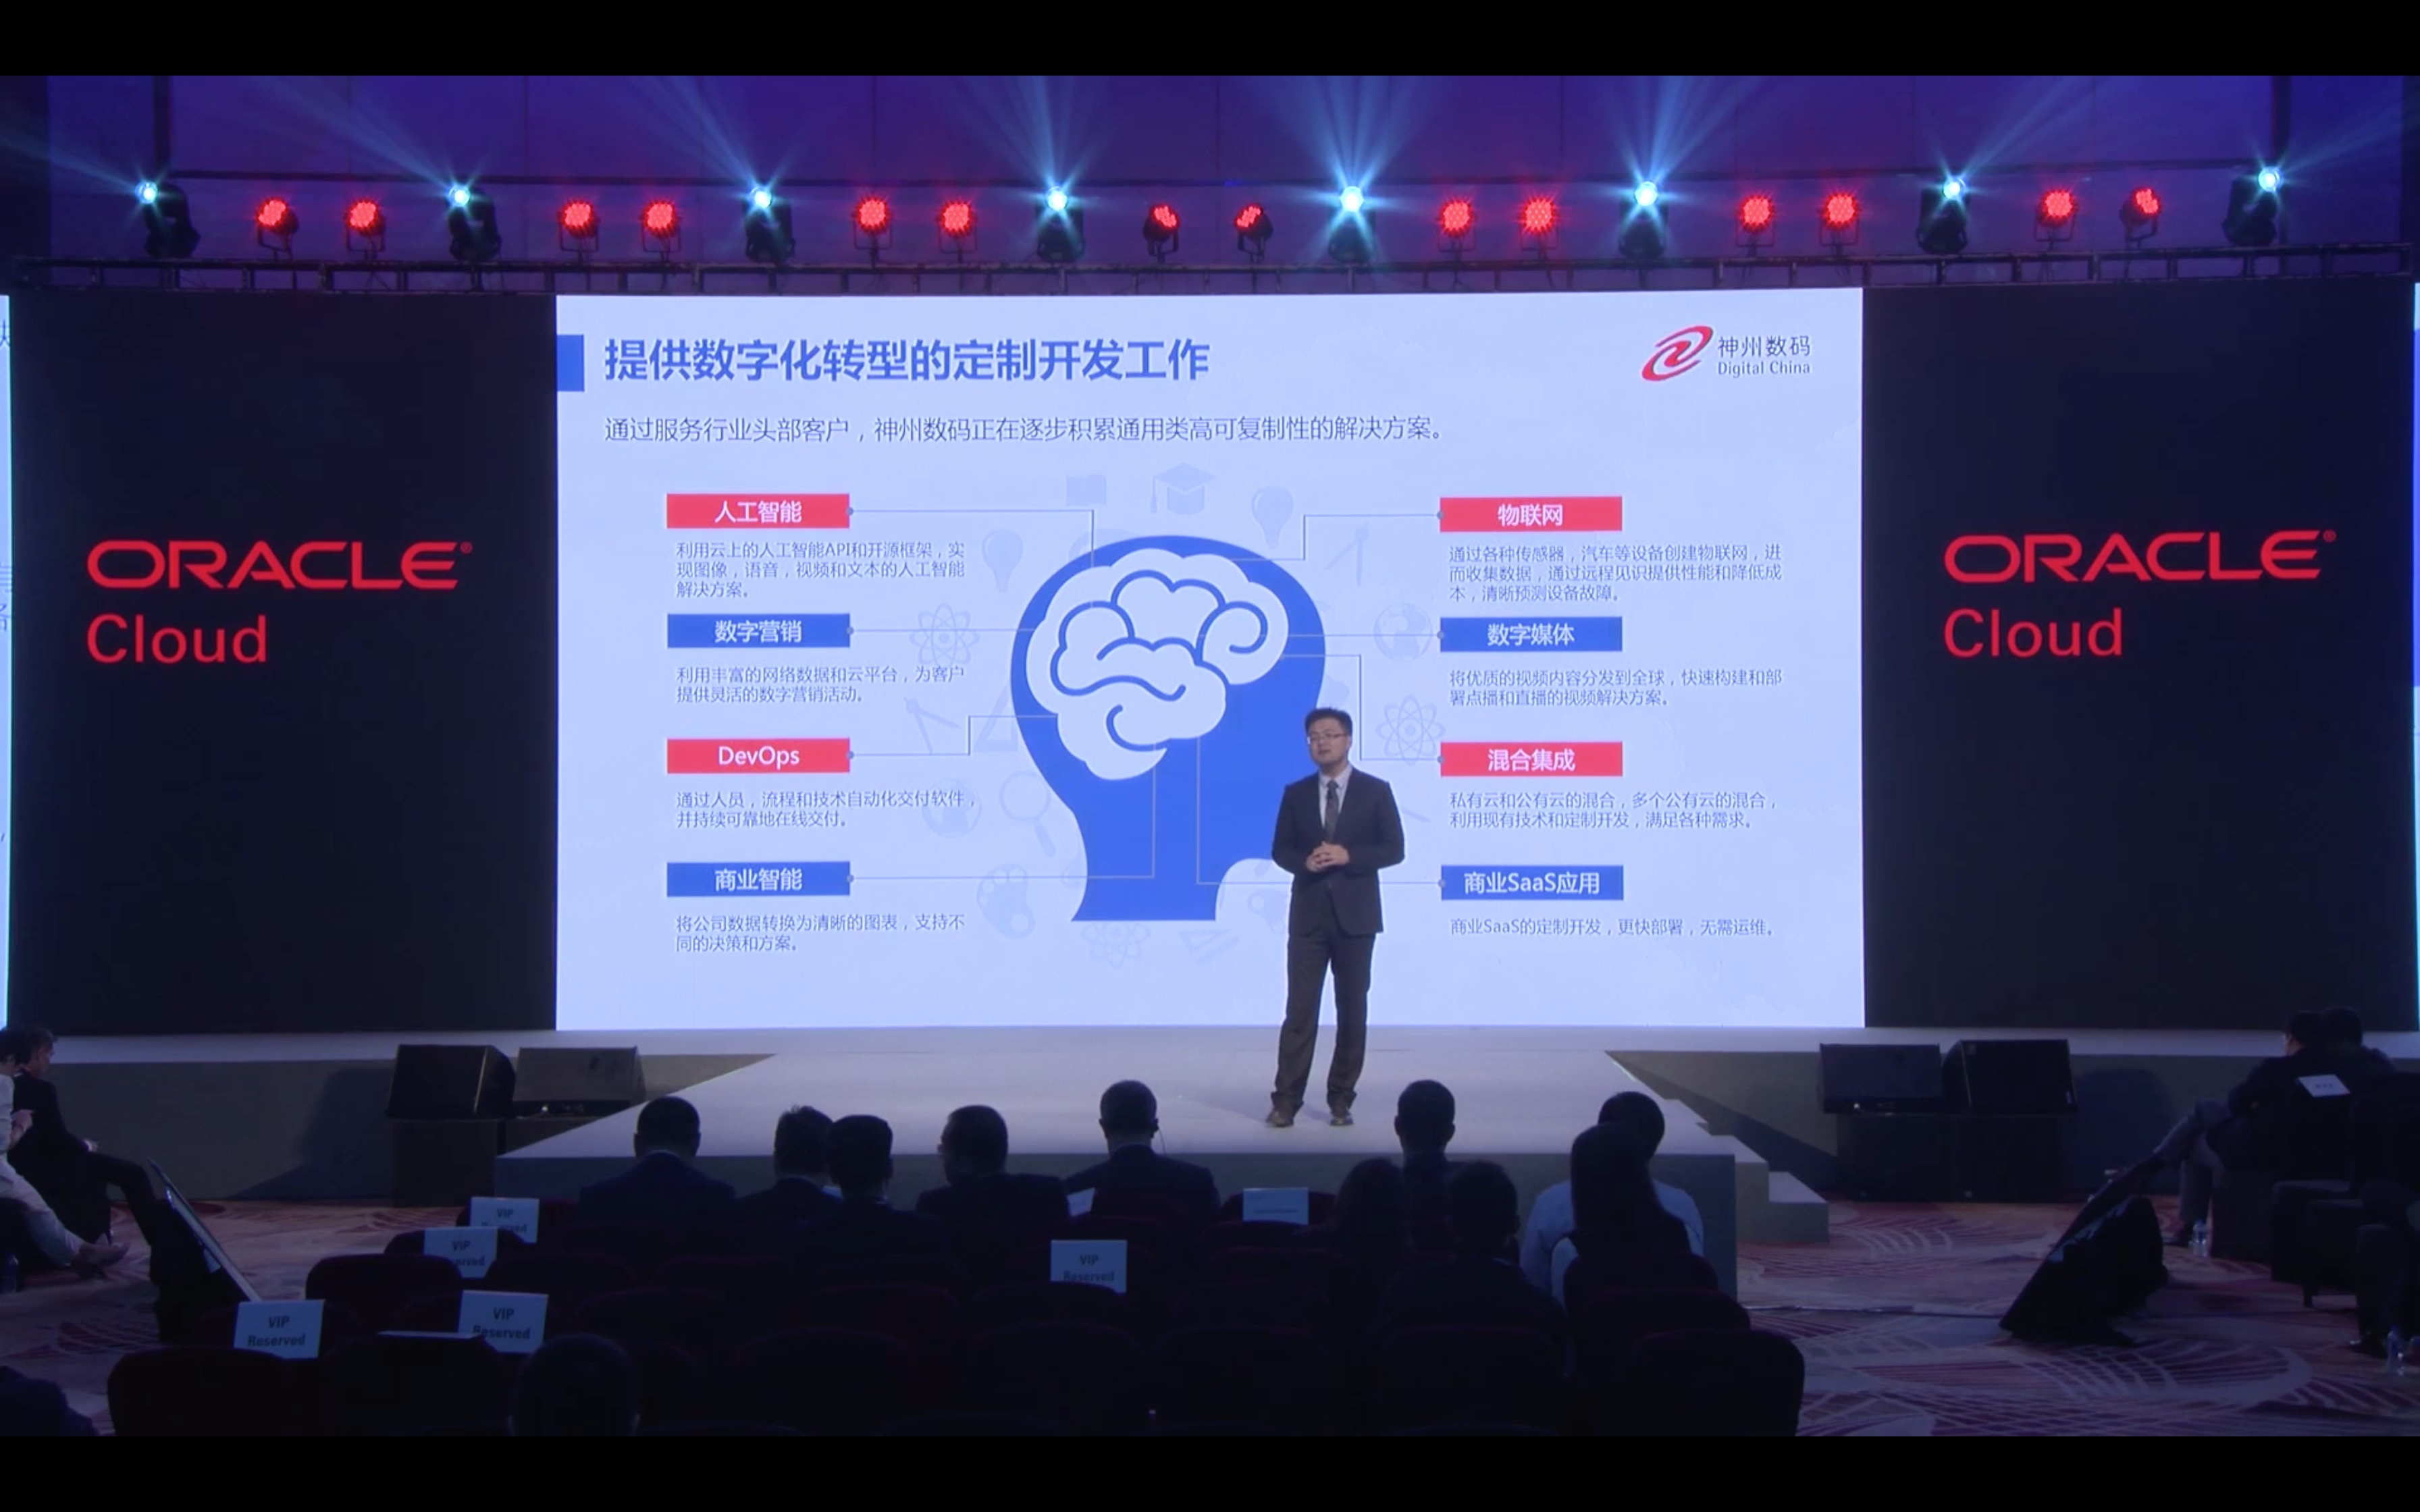 Still from the video on Oracle website. Digital China's CTO Hao Junsheng presenting at Oracle CloudWorld 2018.